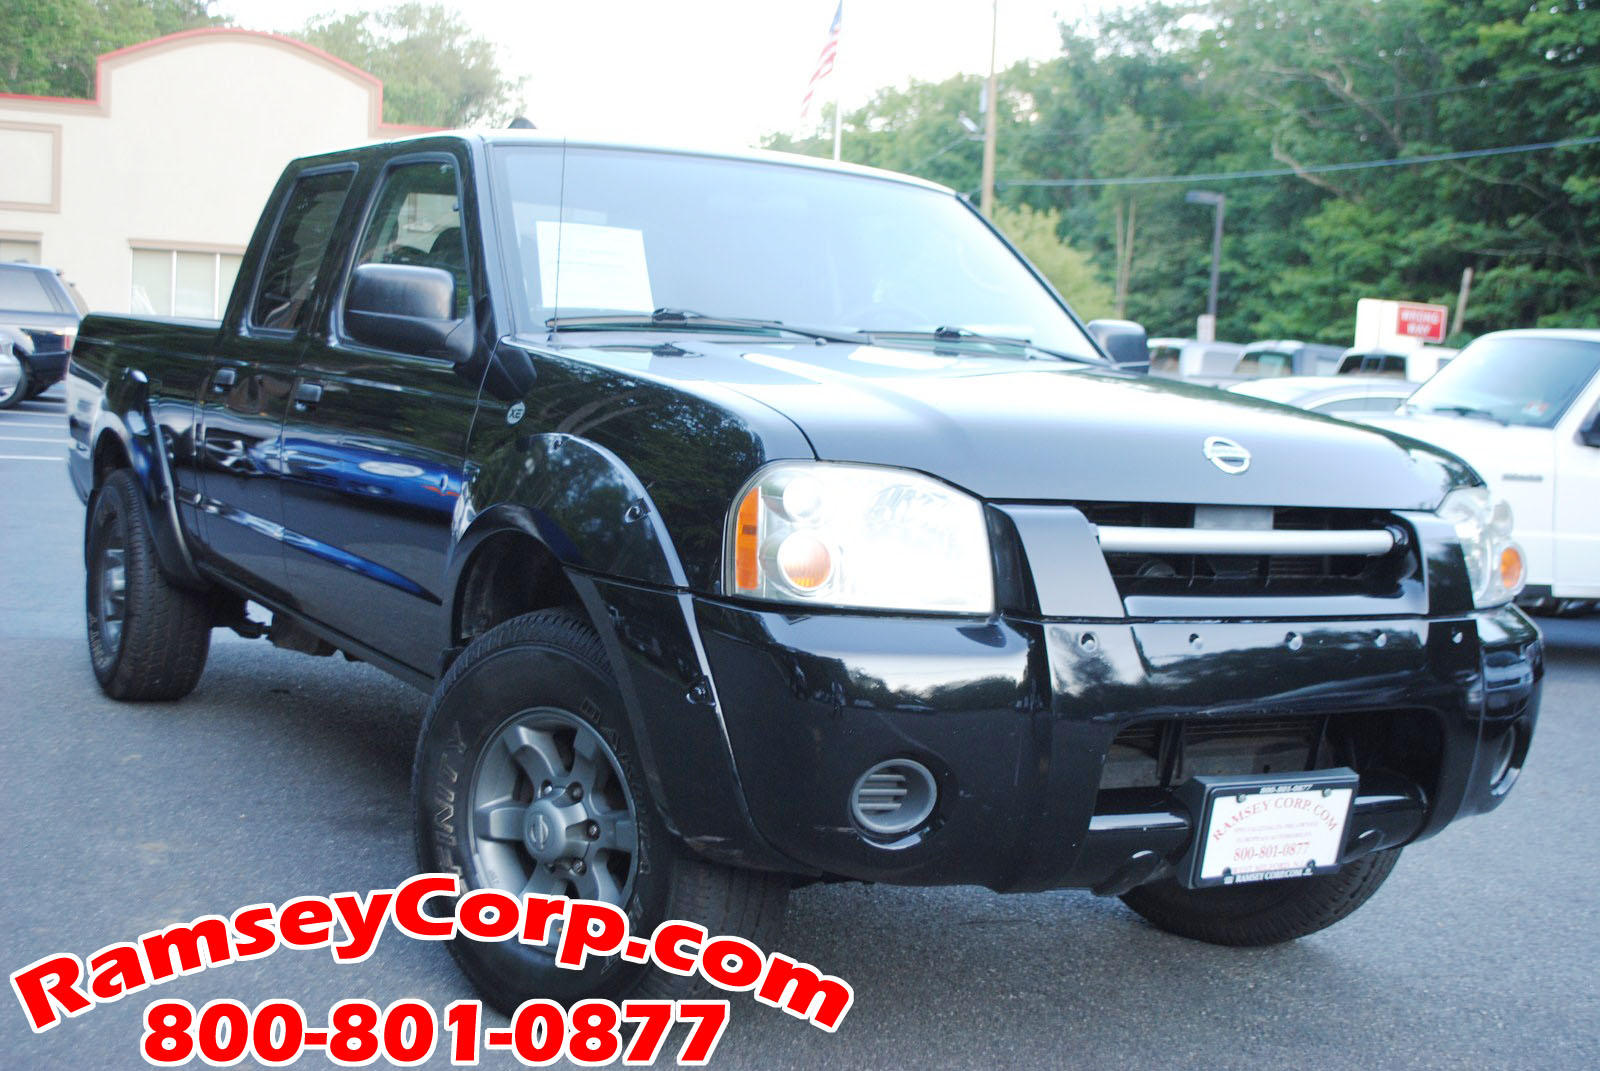 Marvelous ... 2004 Nissan Frontier XE 3.3 Truck Long Bed Crew Cab ...